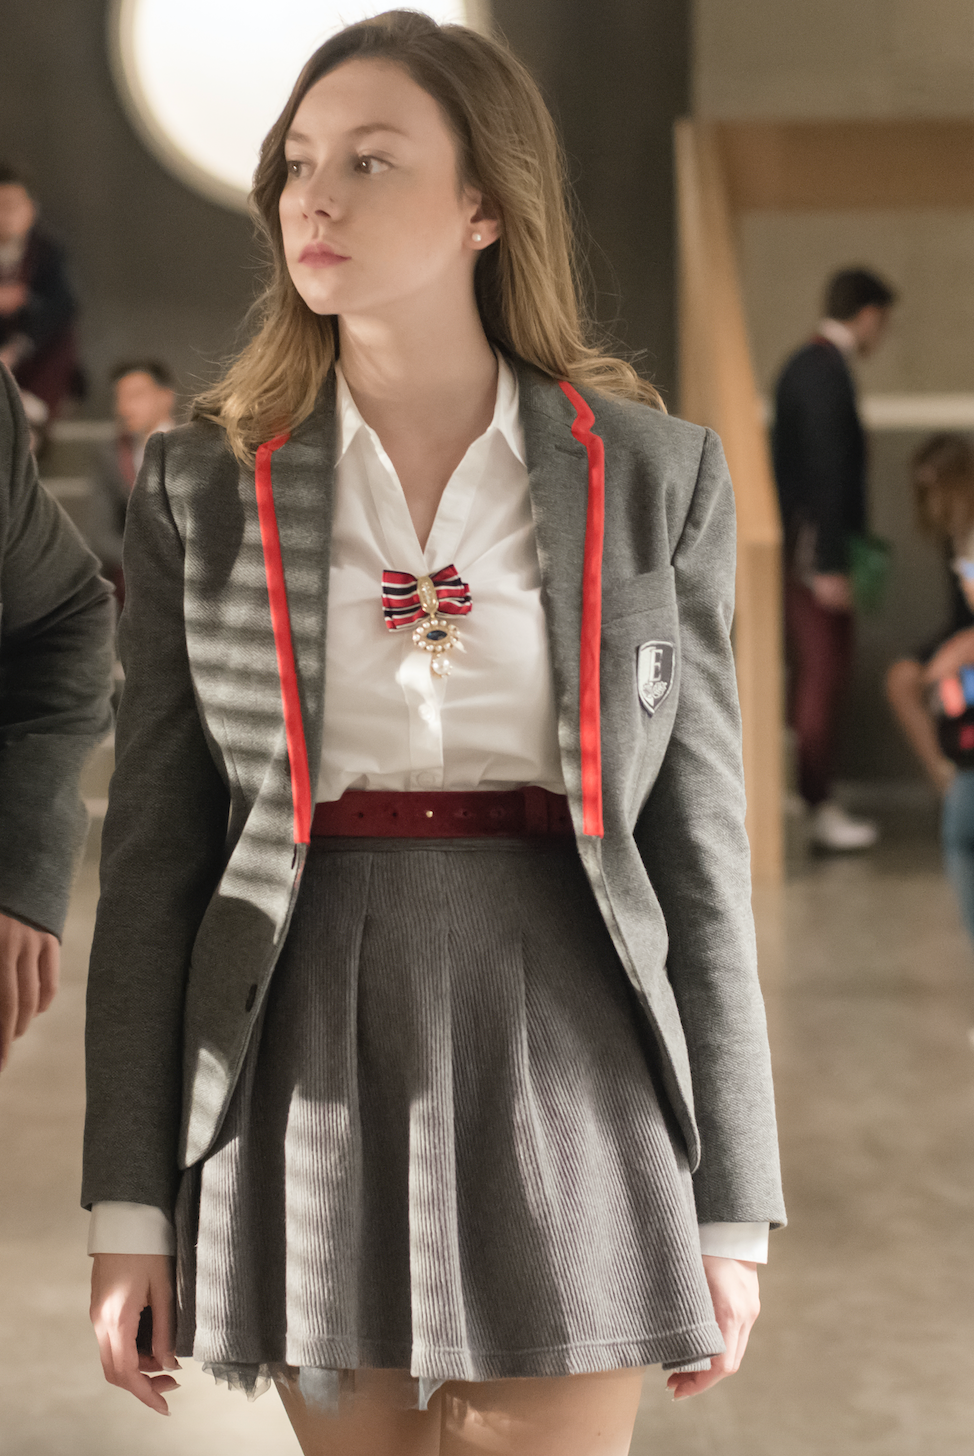 Carla accessorizing her school uniform with a brooch and belt